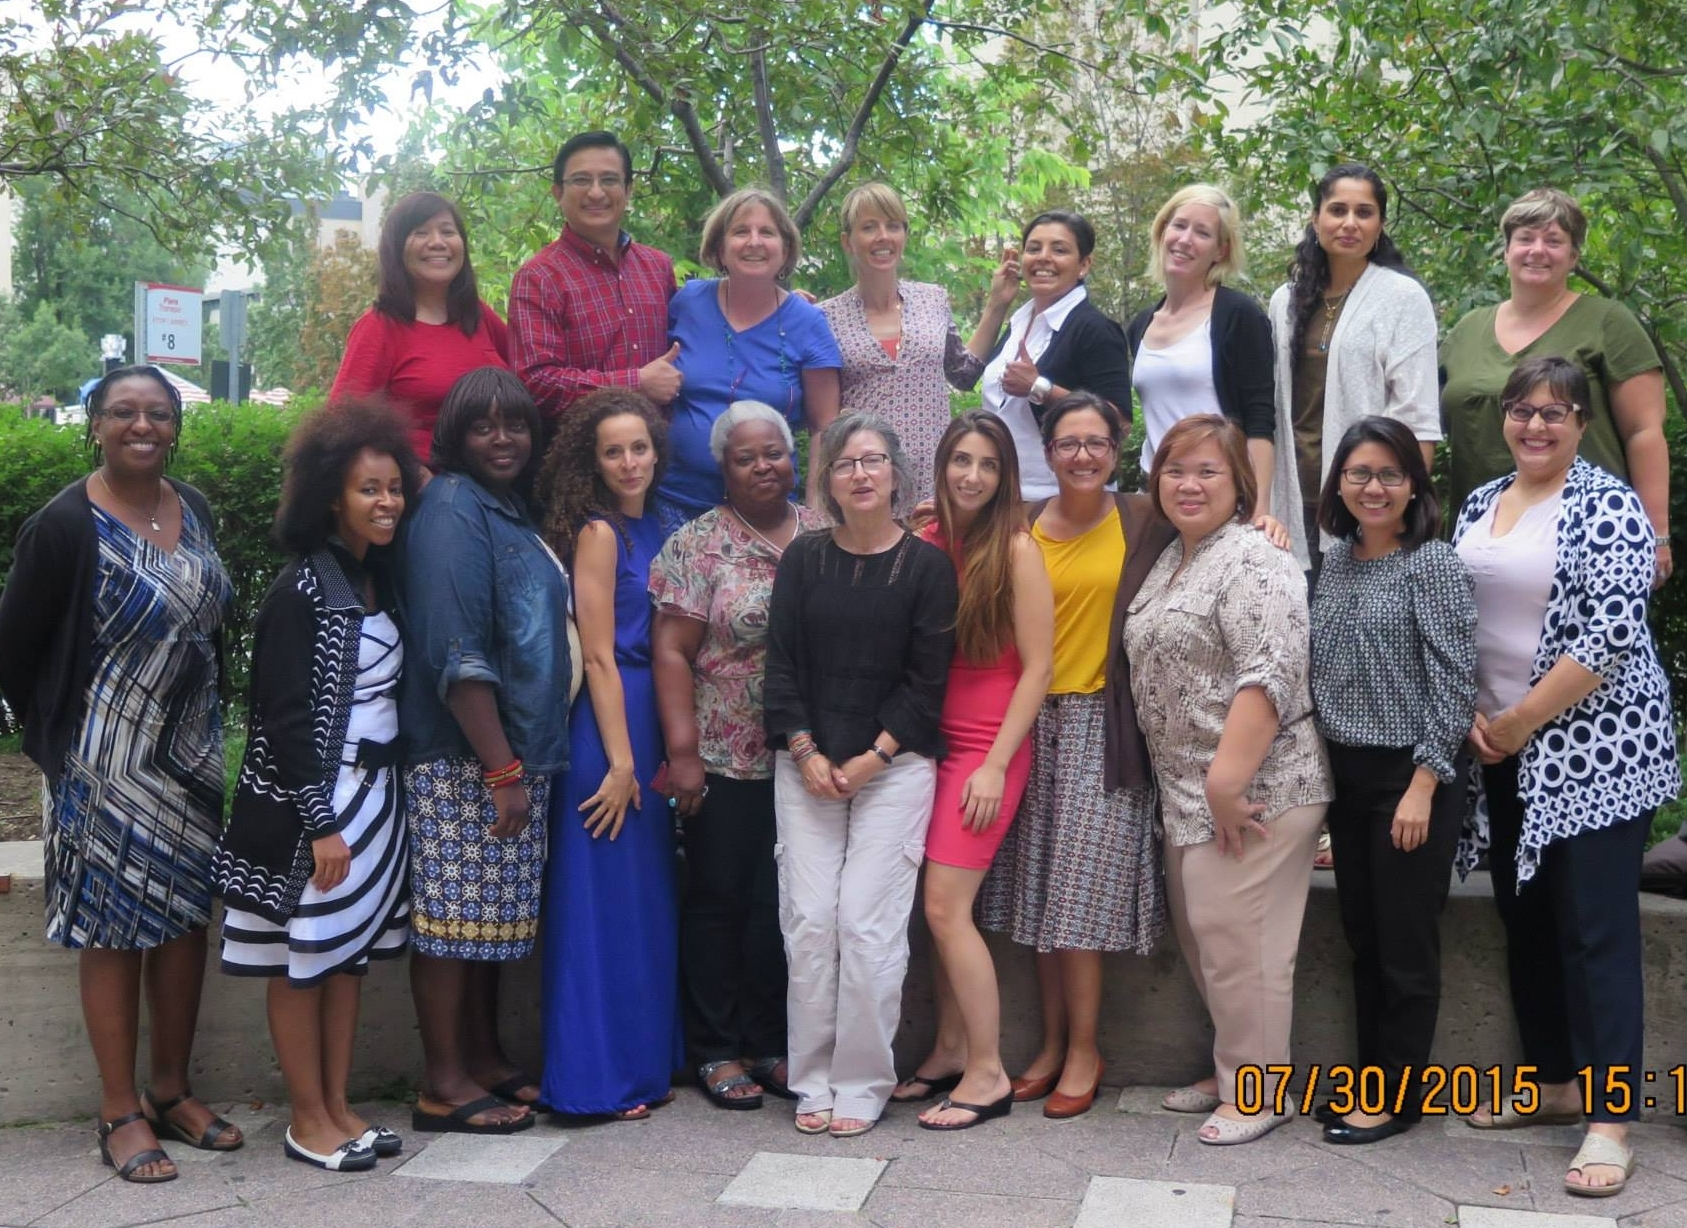 DELIVERED 5 DAY GENDER EQUALITY & INCLUSION TRAINING IN PARTNERSHIP WITH MOSAIC.NET INTLOTTAWA, CANADA (2015) -